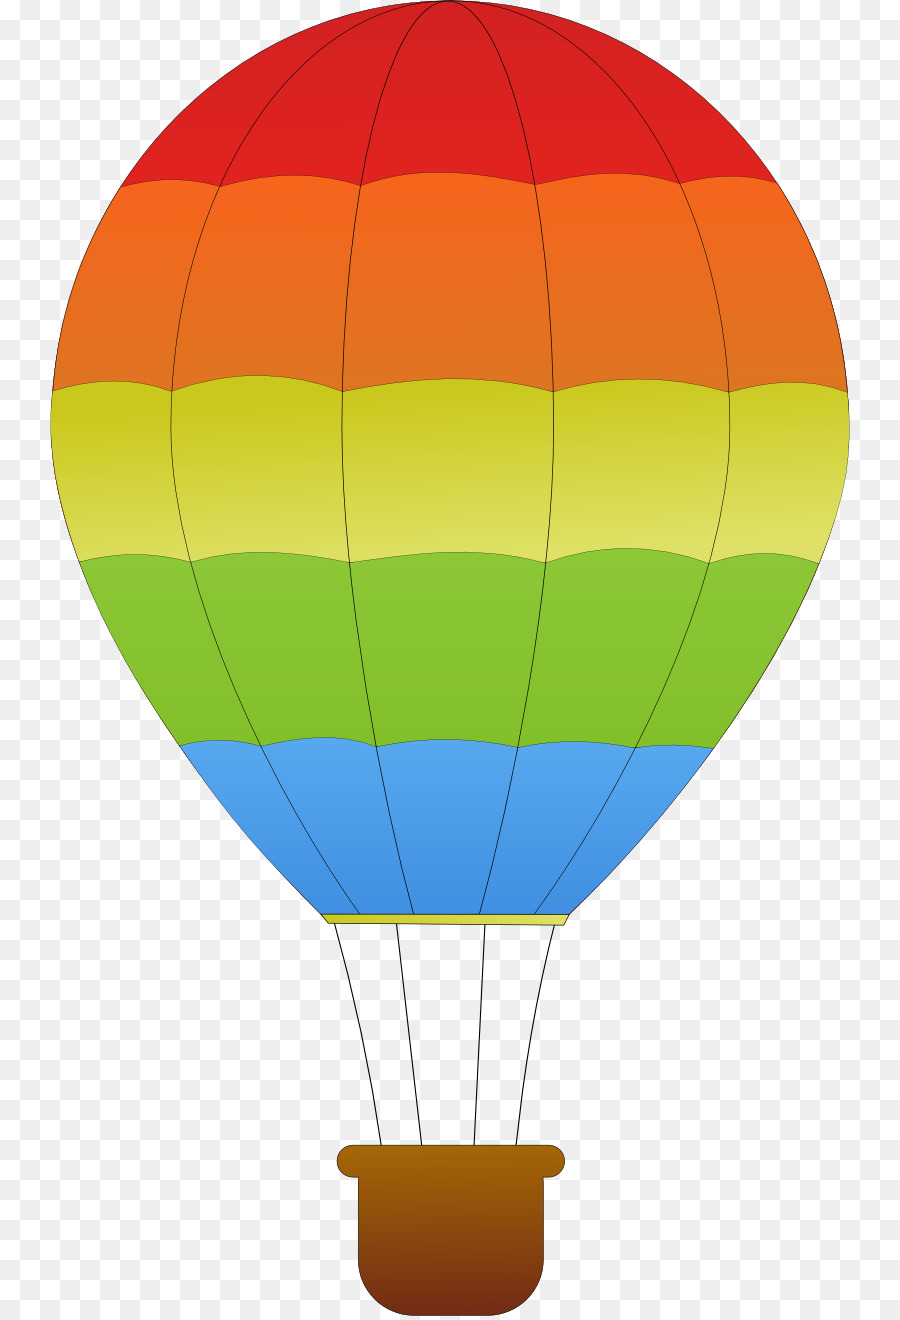 hot air balloon cartoon drawing clip art balloon png download rh kisspng com hot air balloon cartoon cartoon hot air balloon png